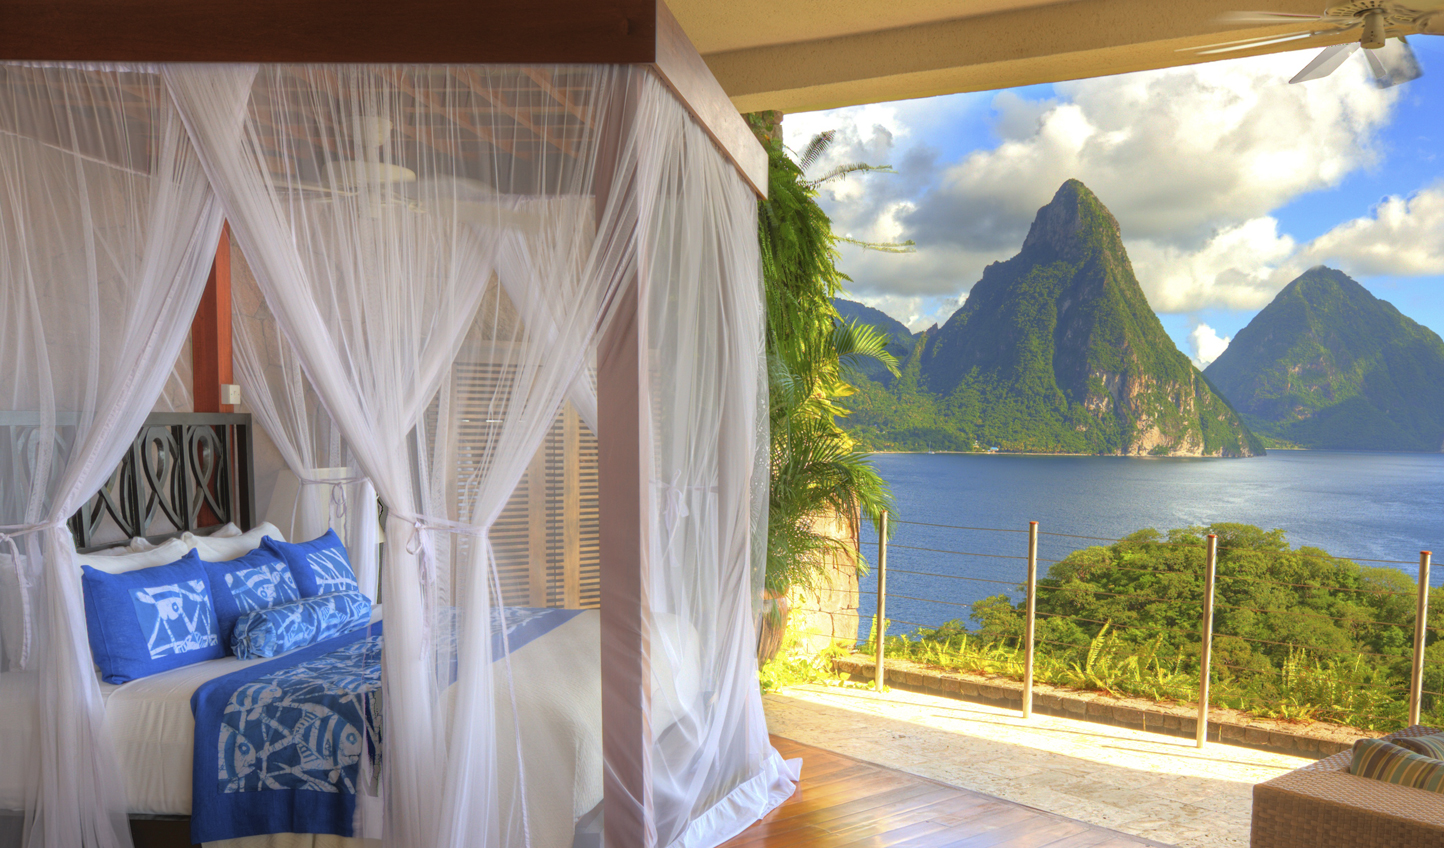 Breathtaking views to wake up to